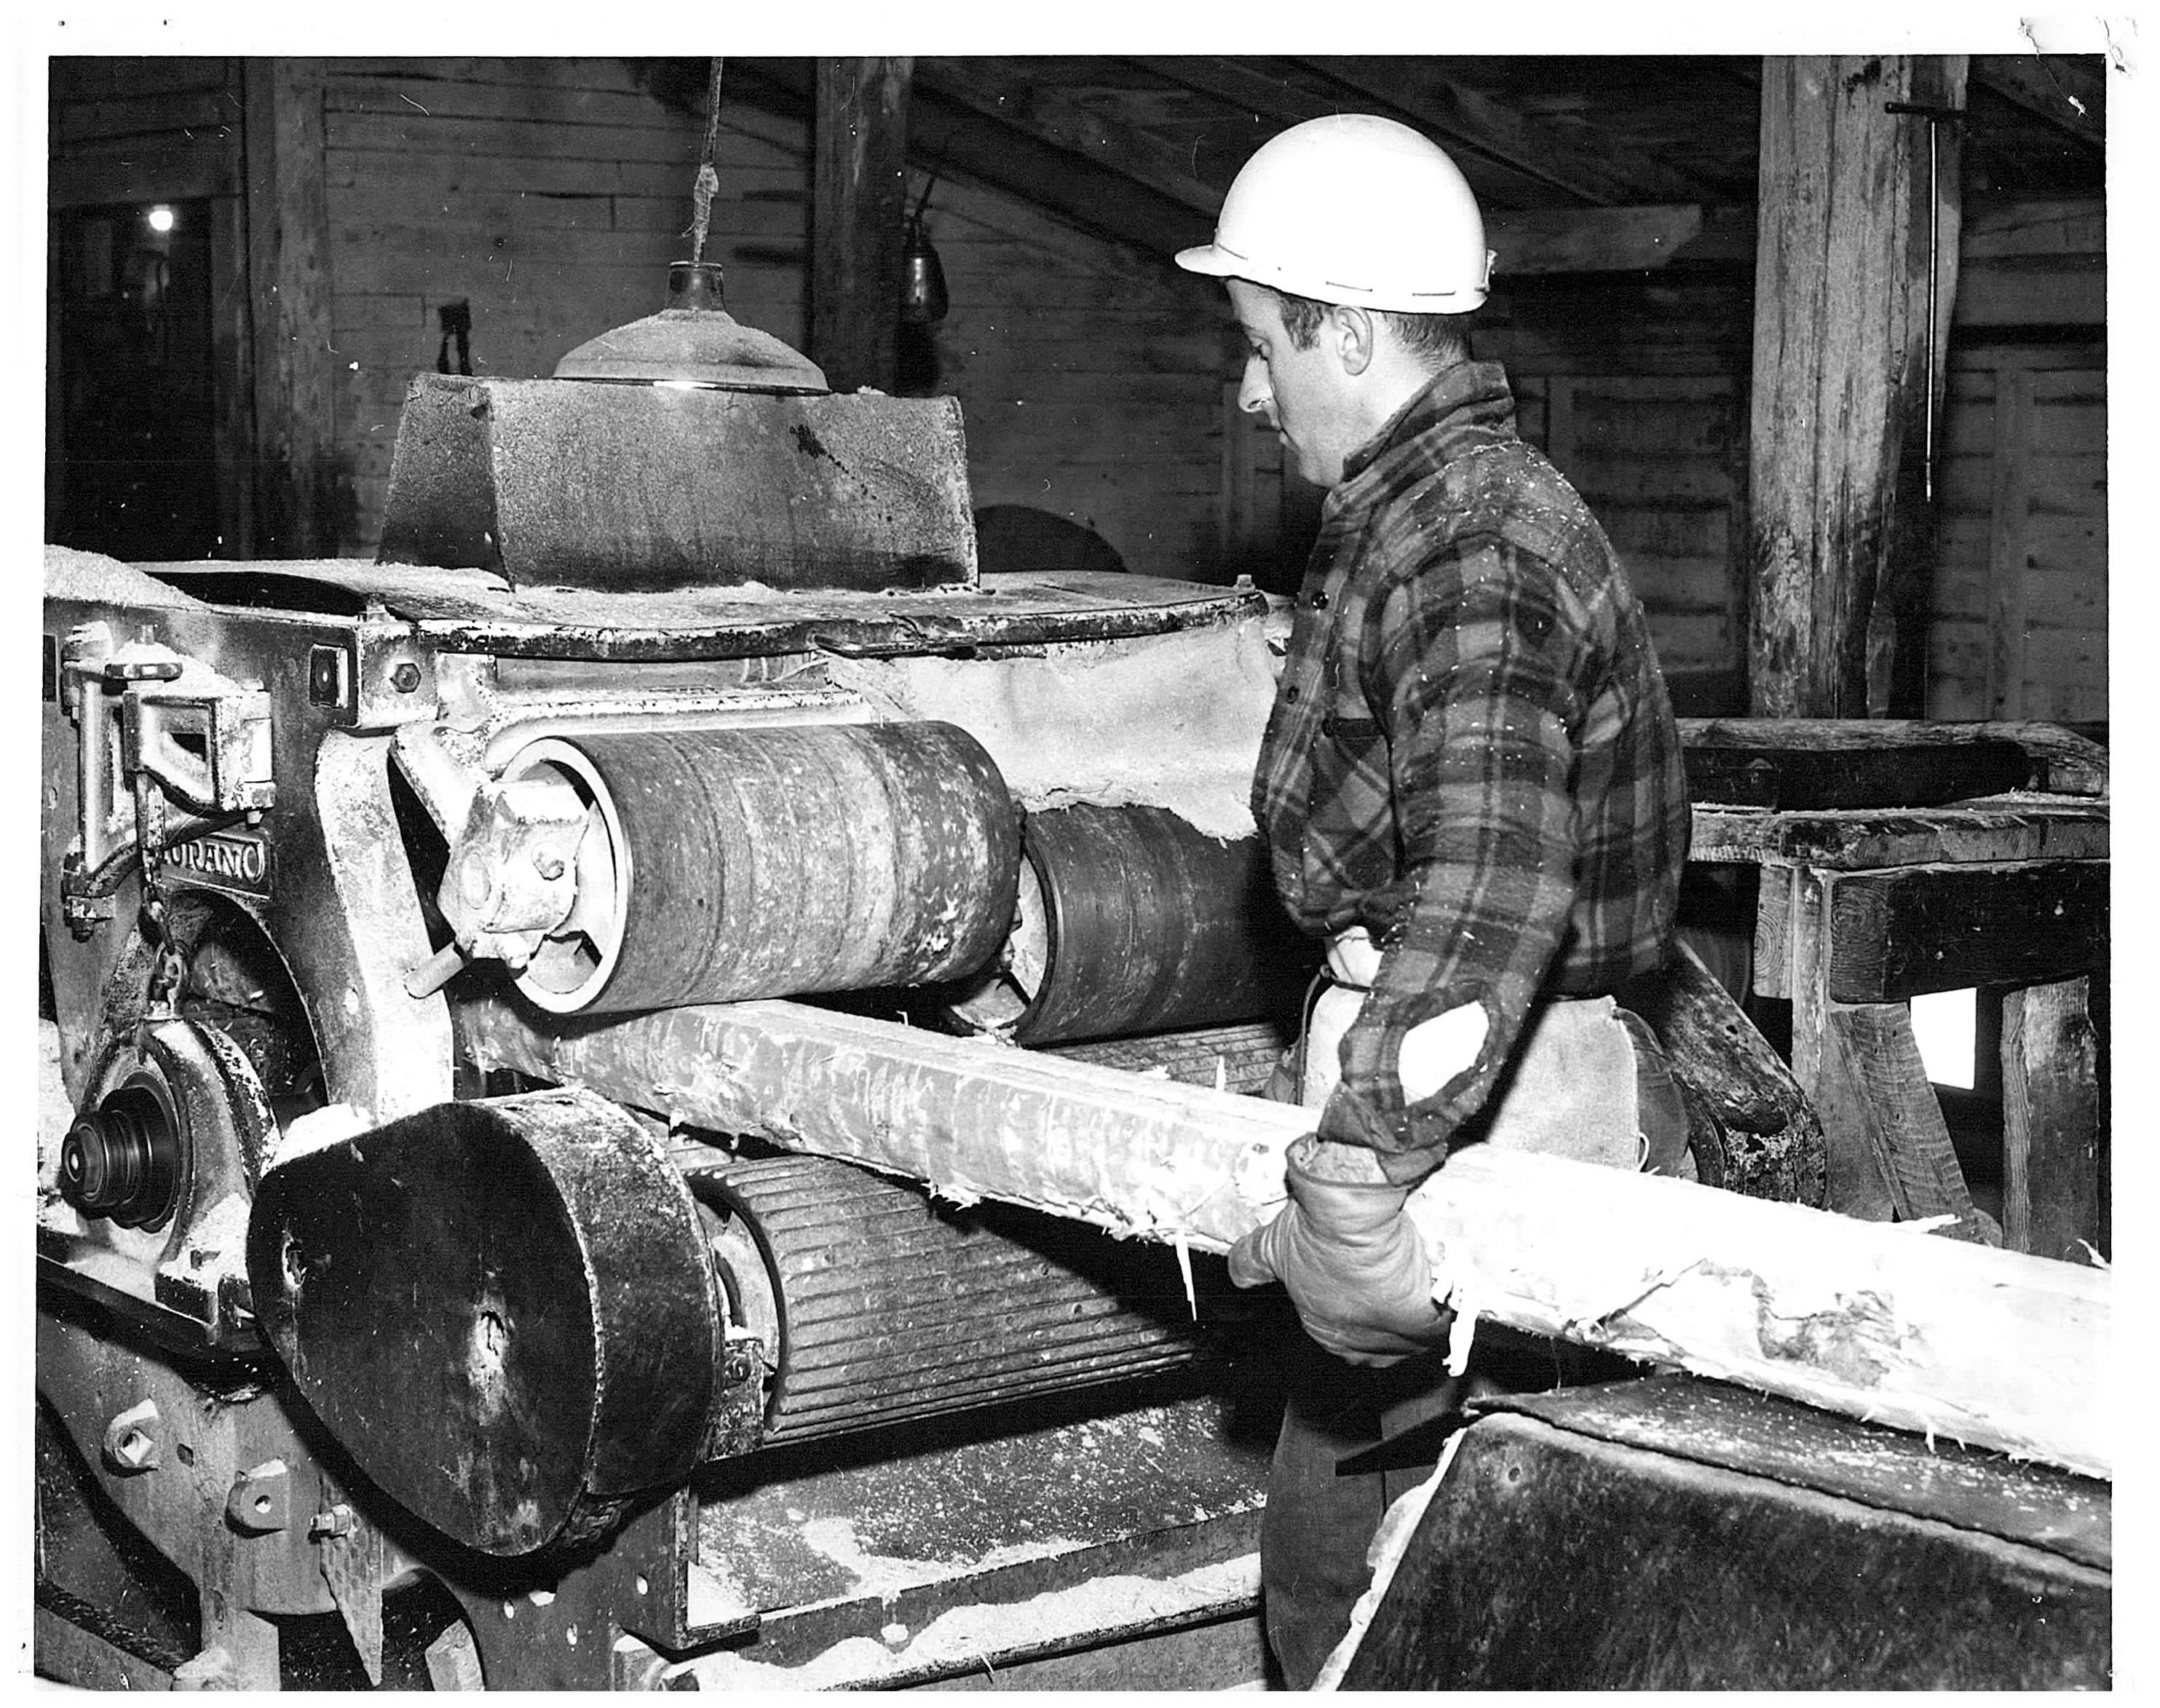 Sawmill operations in Dubreuilville